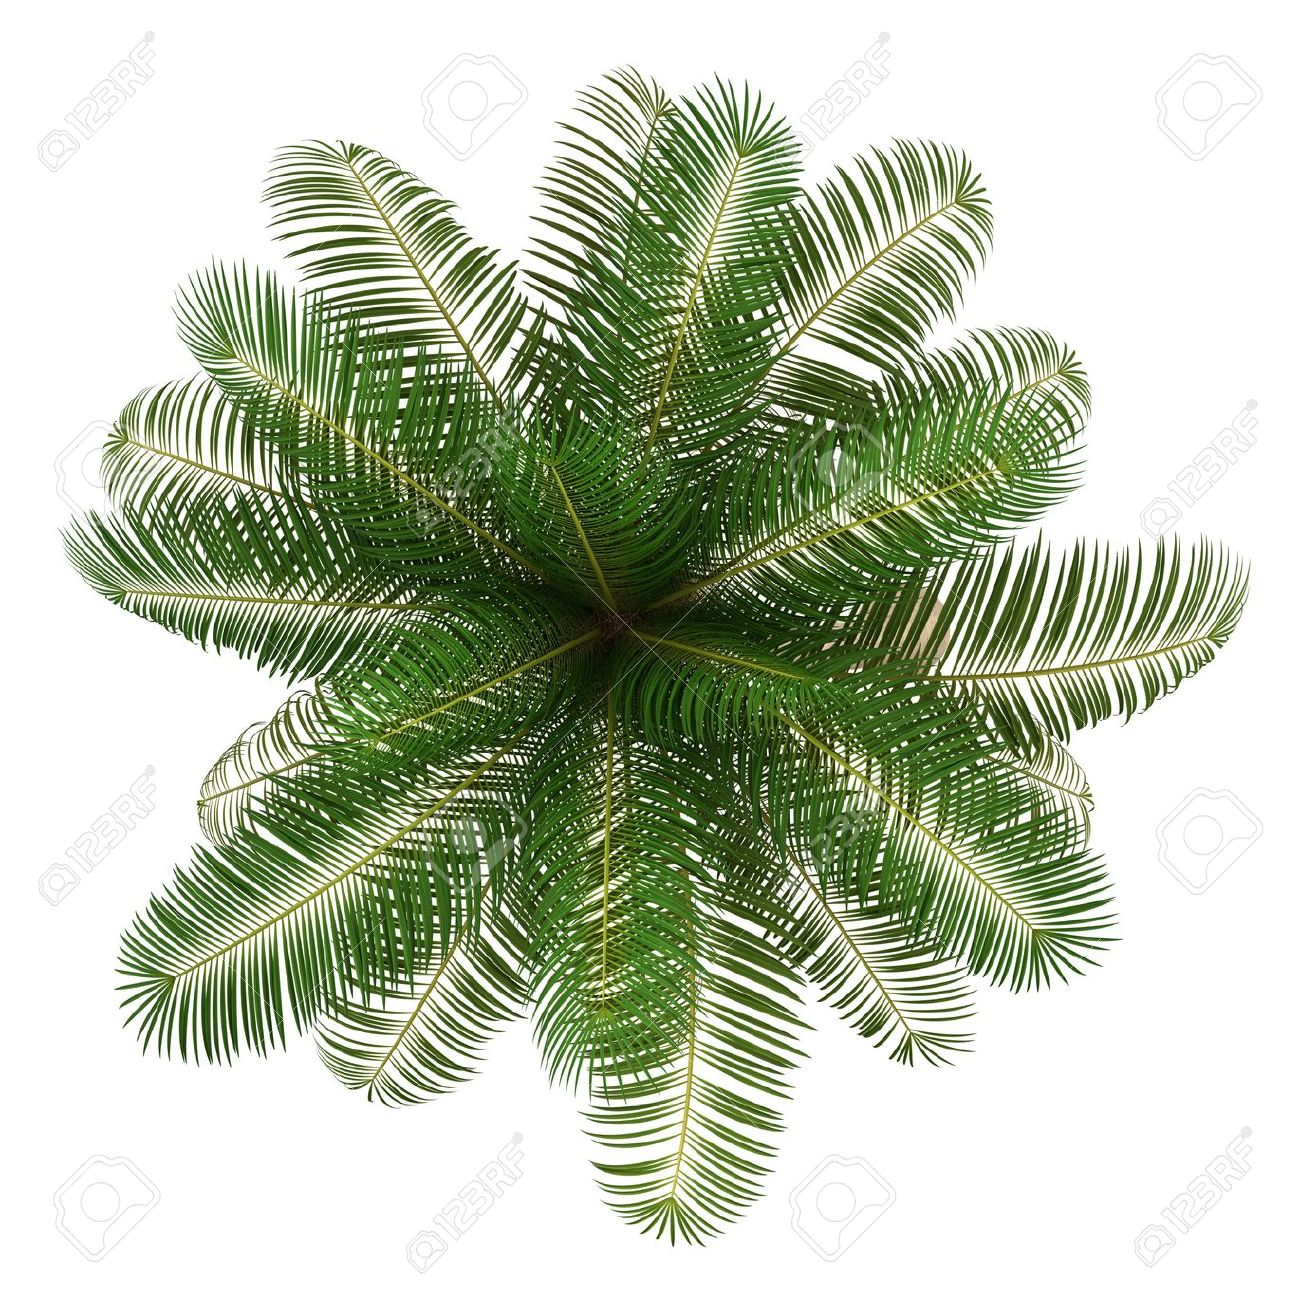 Top View Of Coconut Palm Tree Isolated On White Background Stock ... for Palm Tree Top View Png  570bof